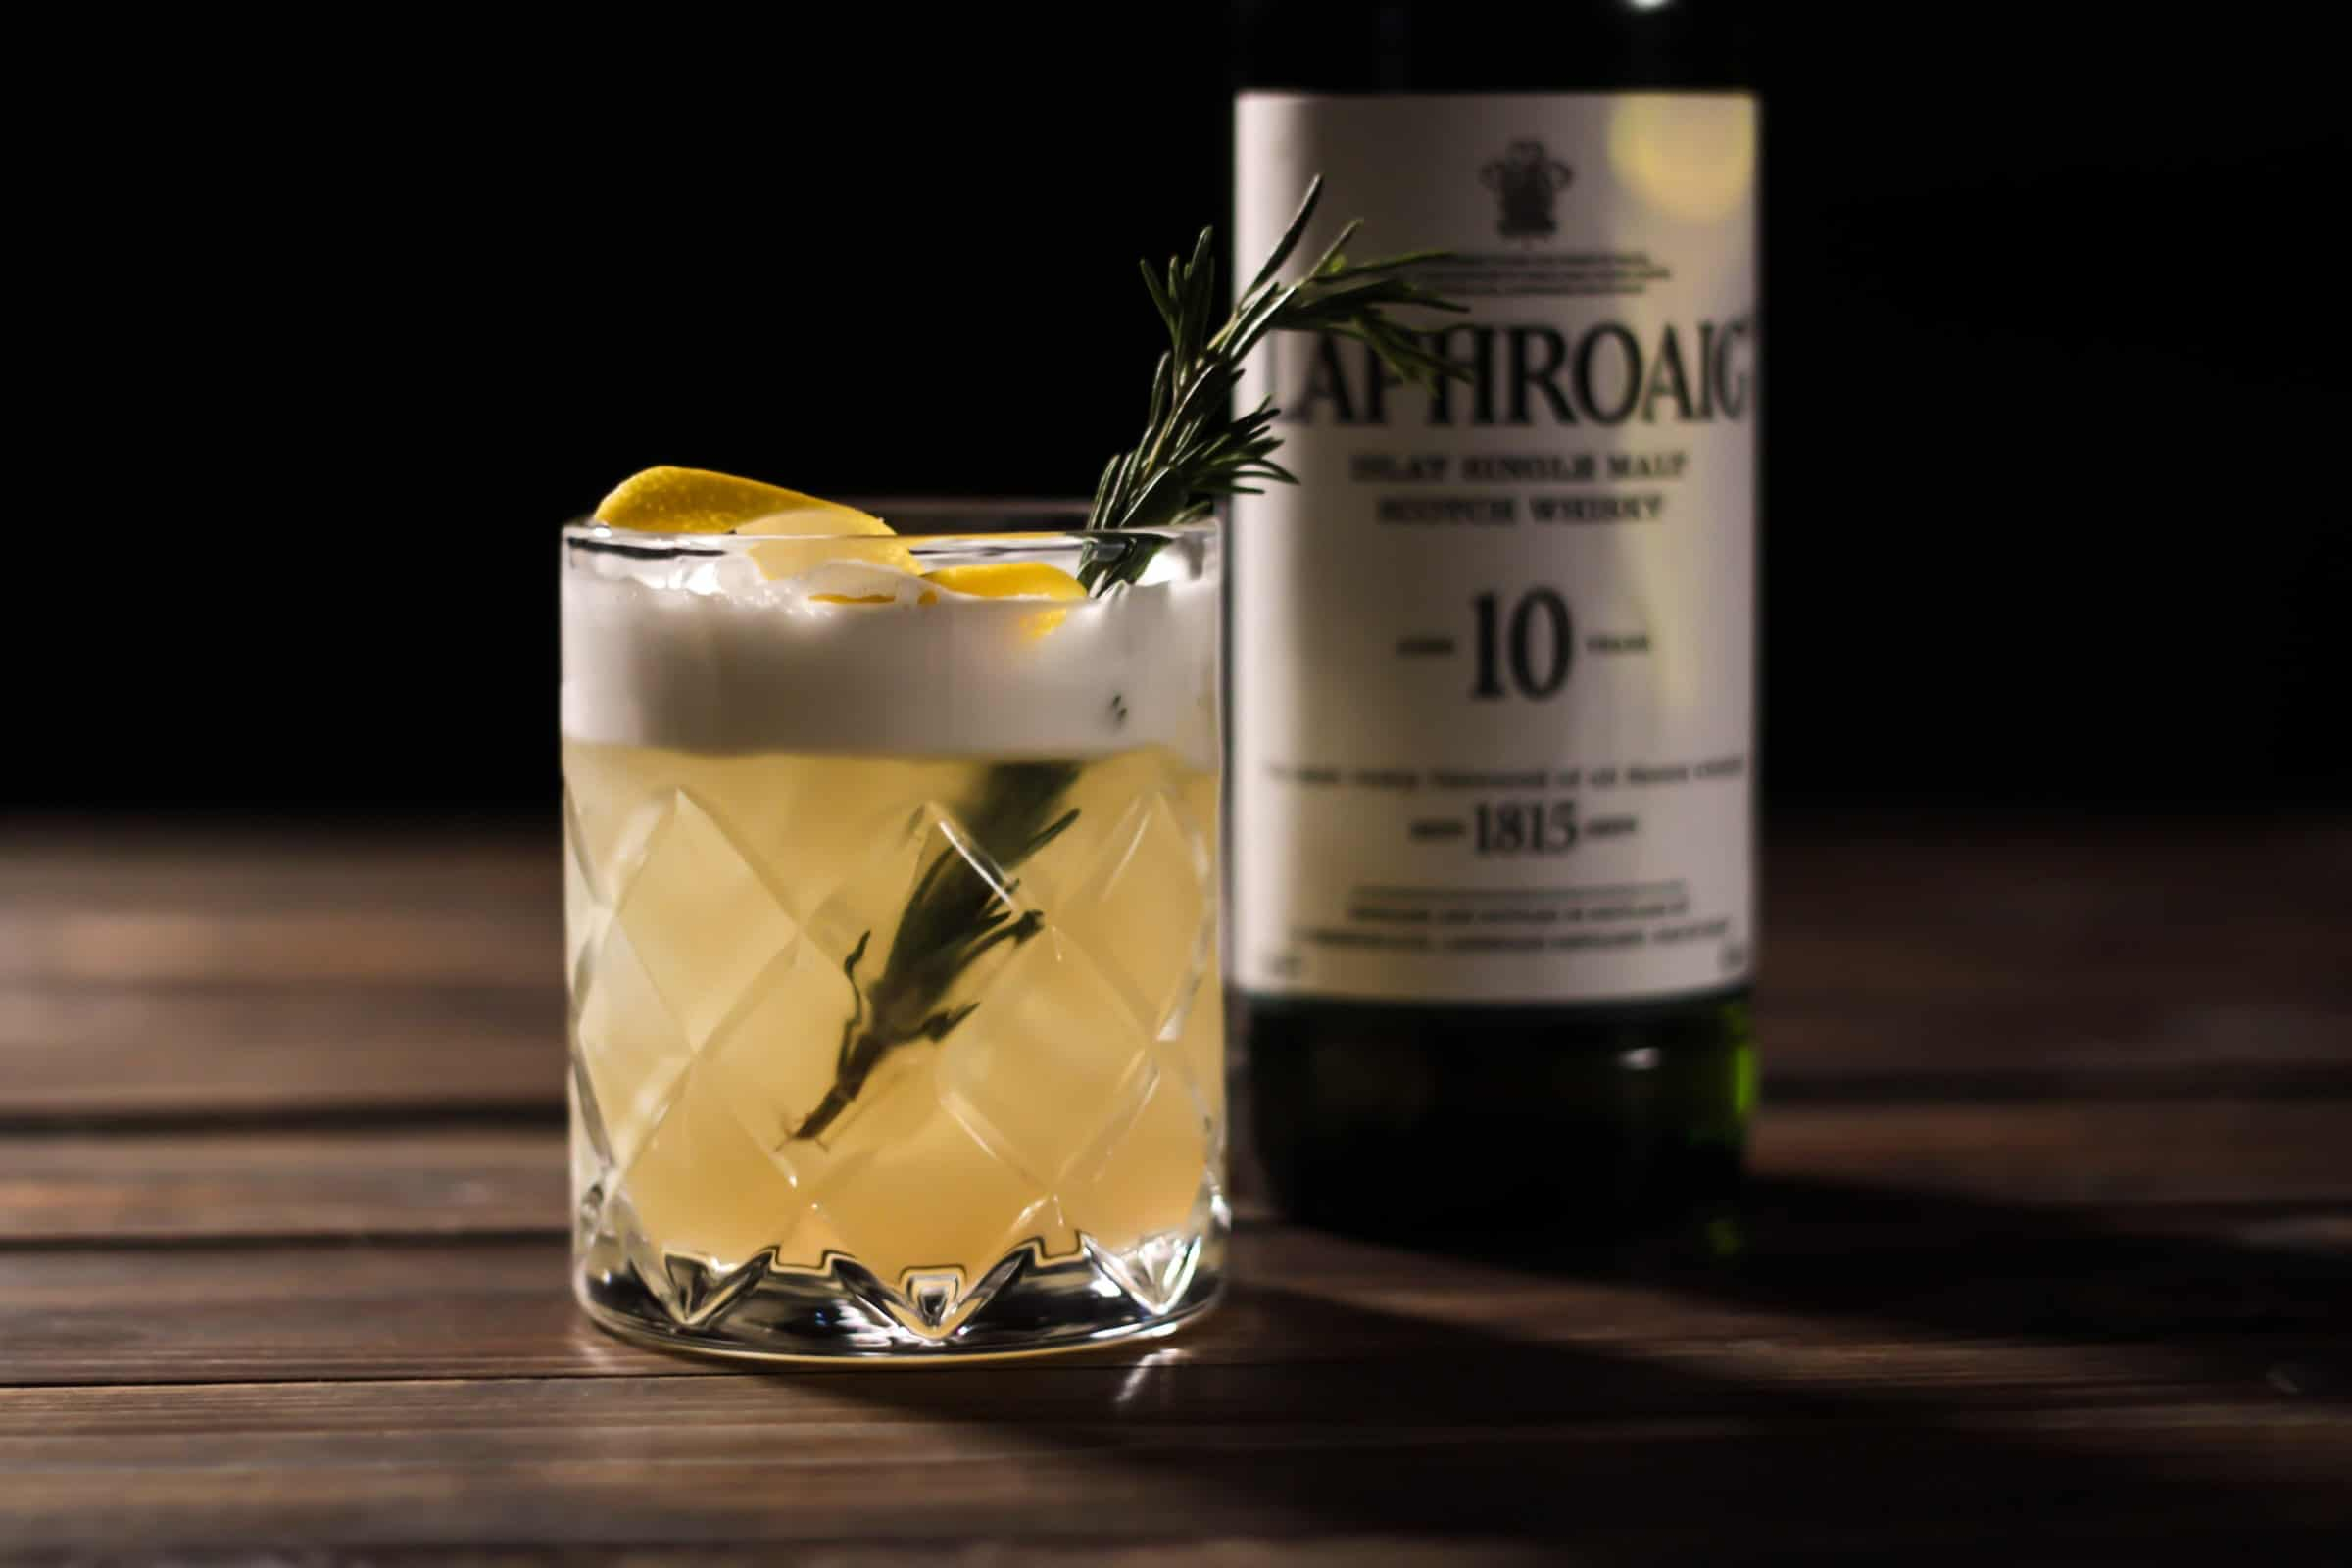 A whisky sour cocktail in front of a bottle of Laphroaig Whisky